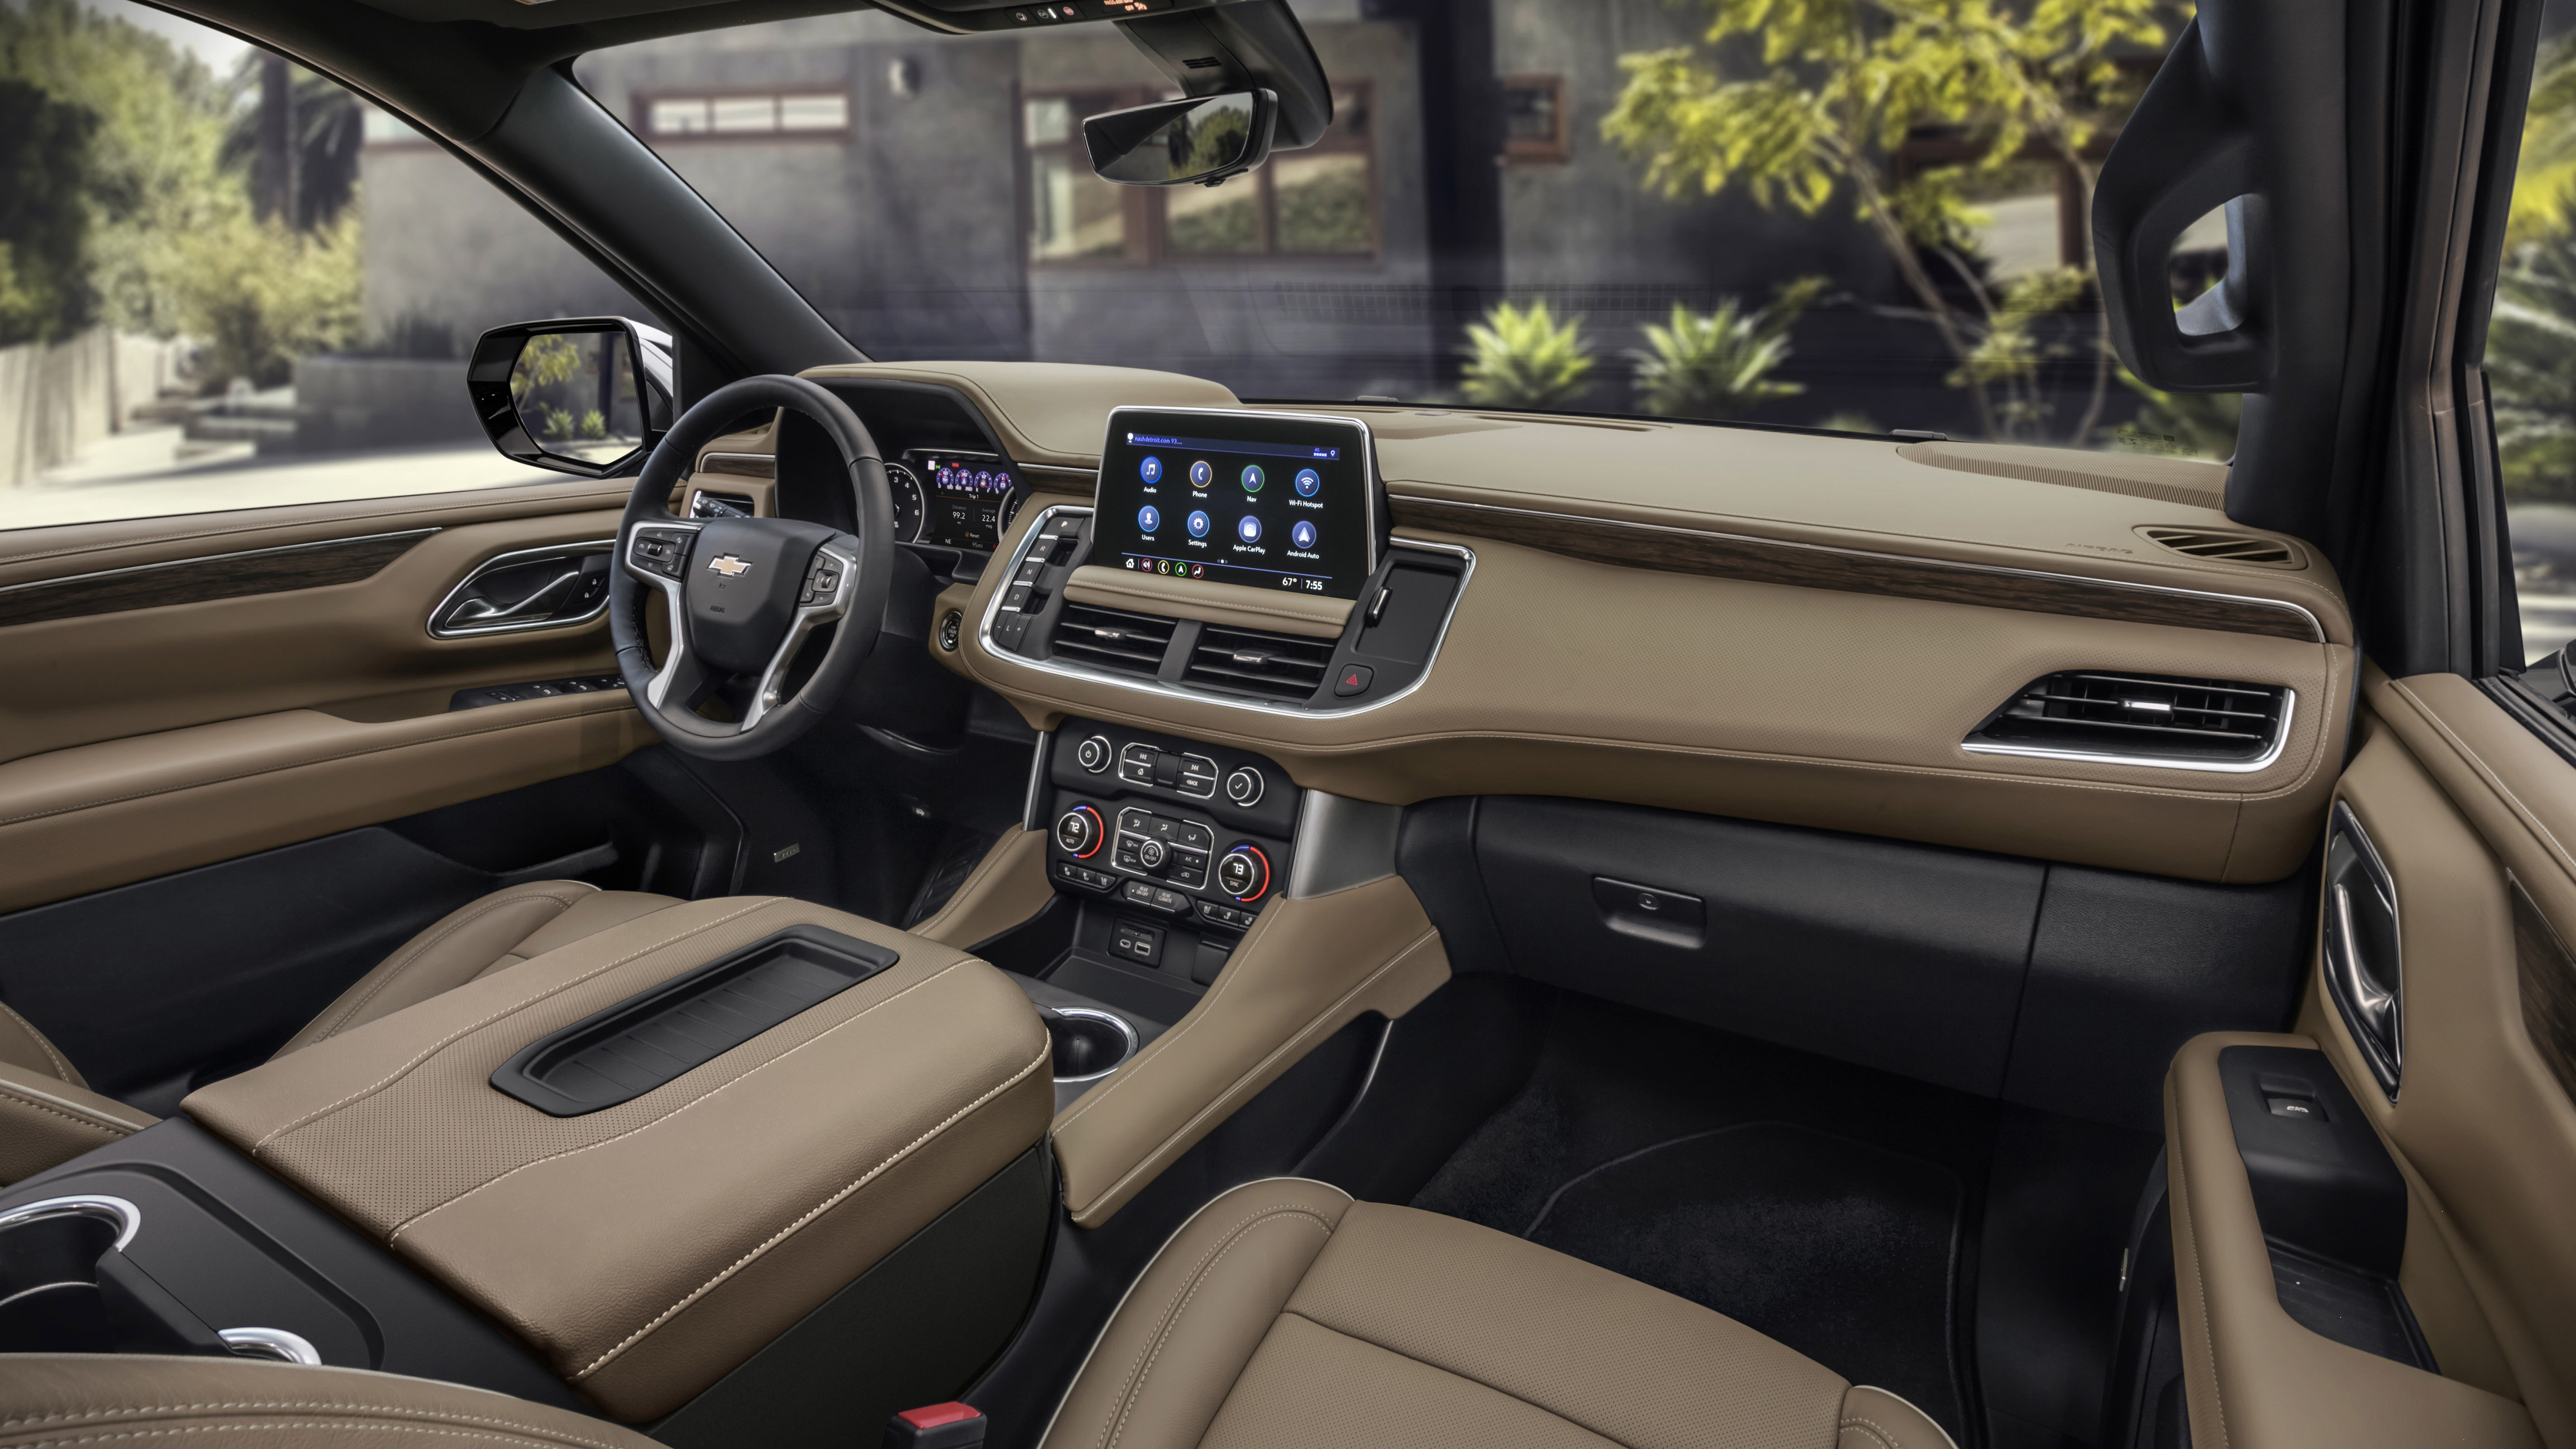 2021 Chevy Tahoe and Suburban interior design is a big ...